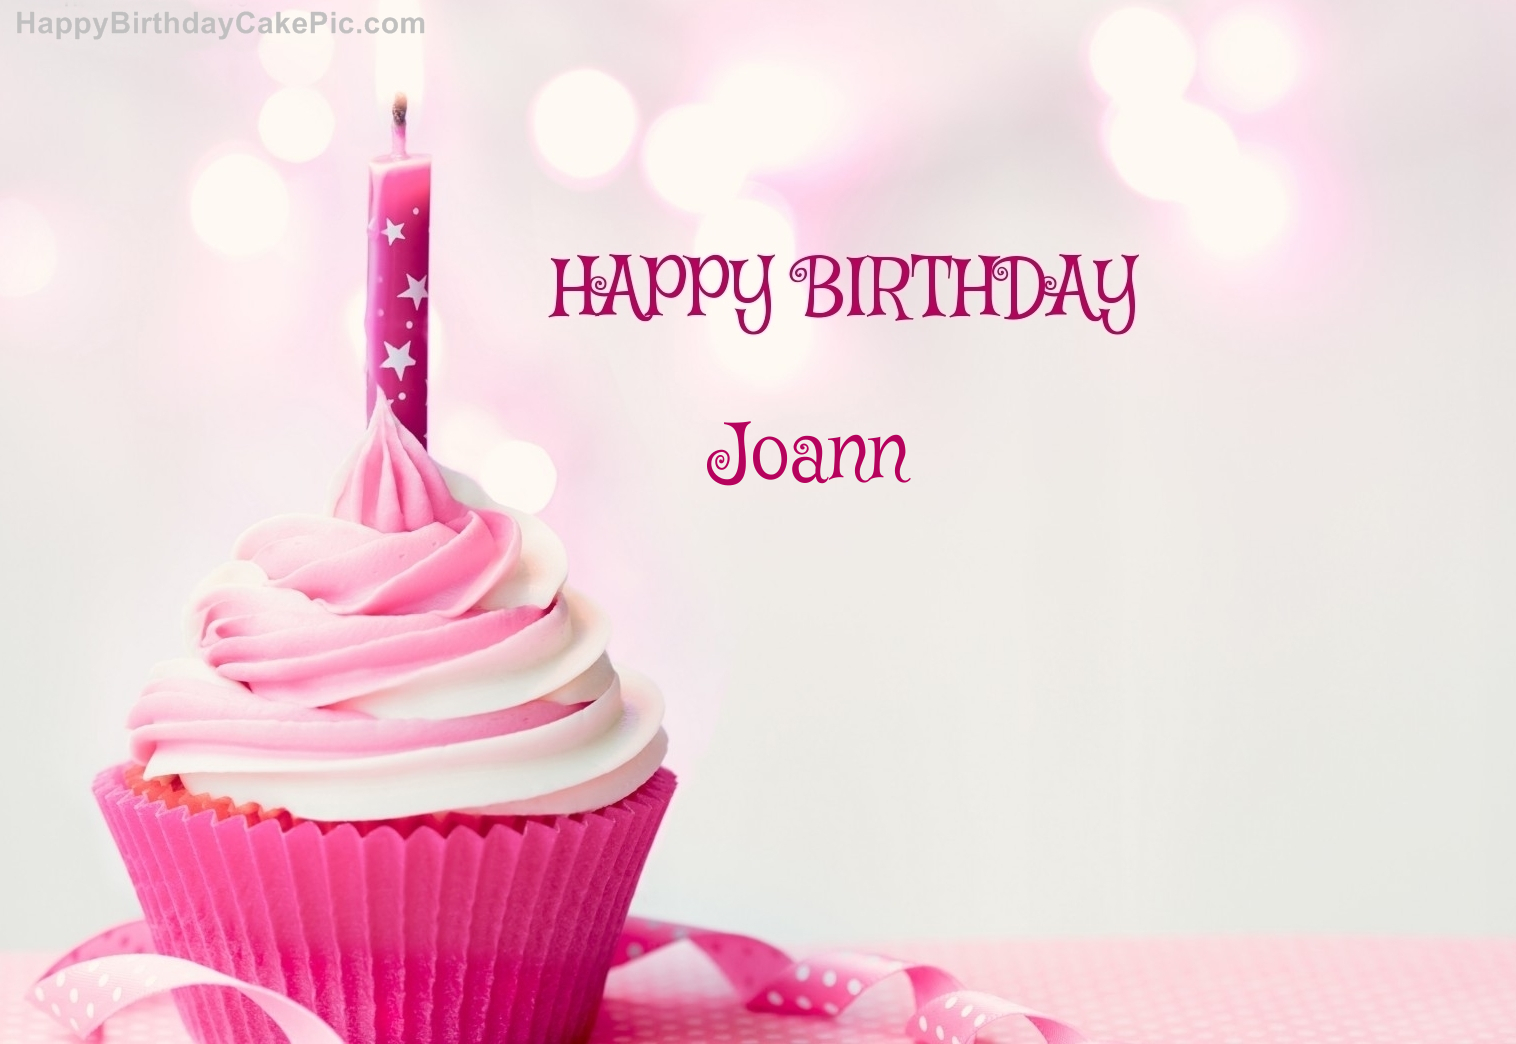 Happy Birthday Cupcake Candle Pink Cake For Joann